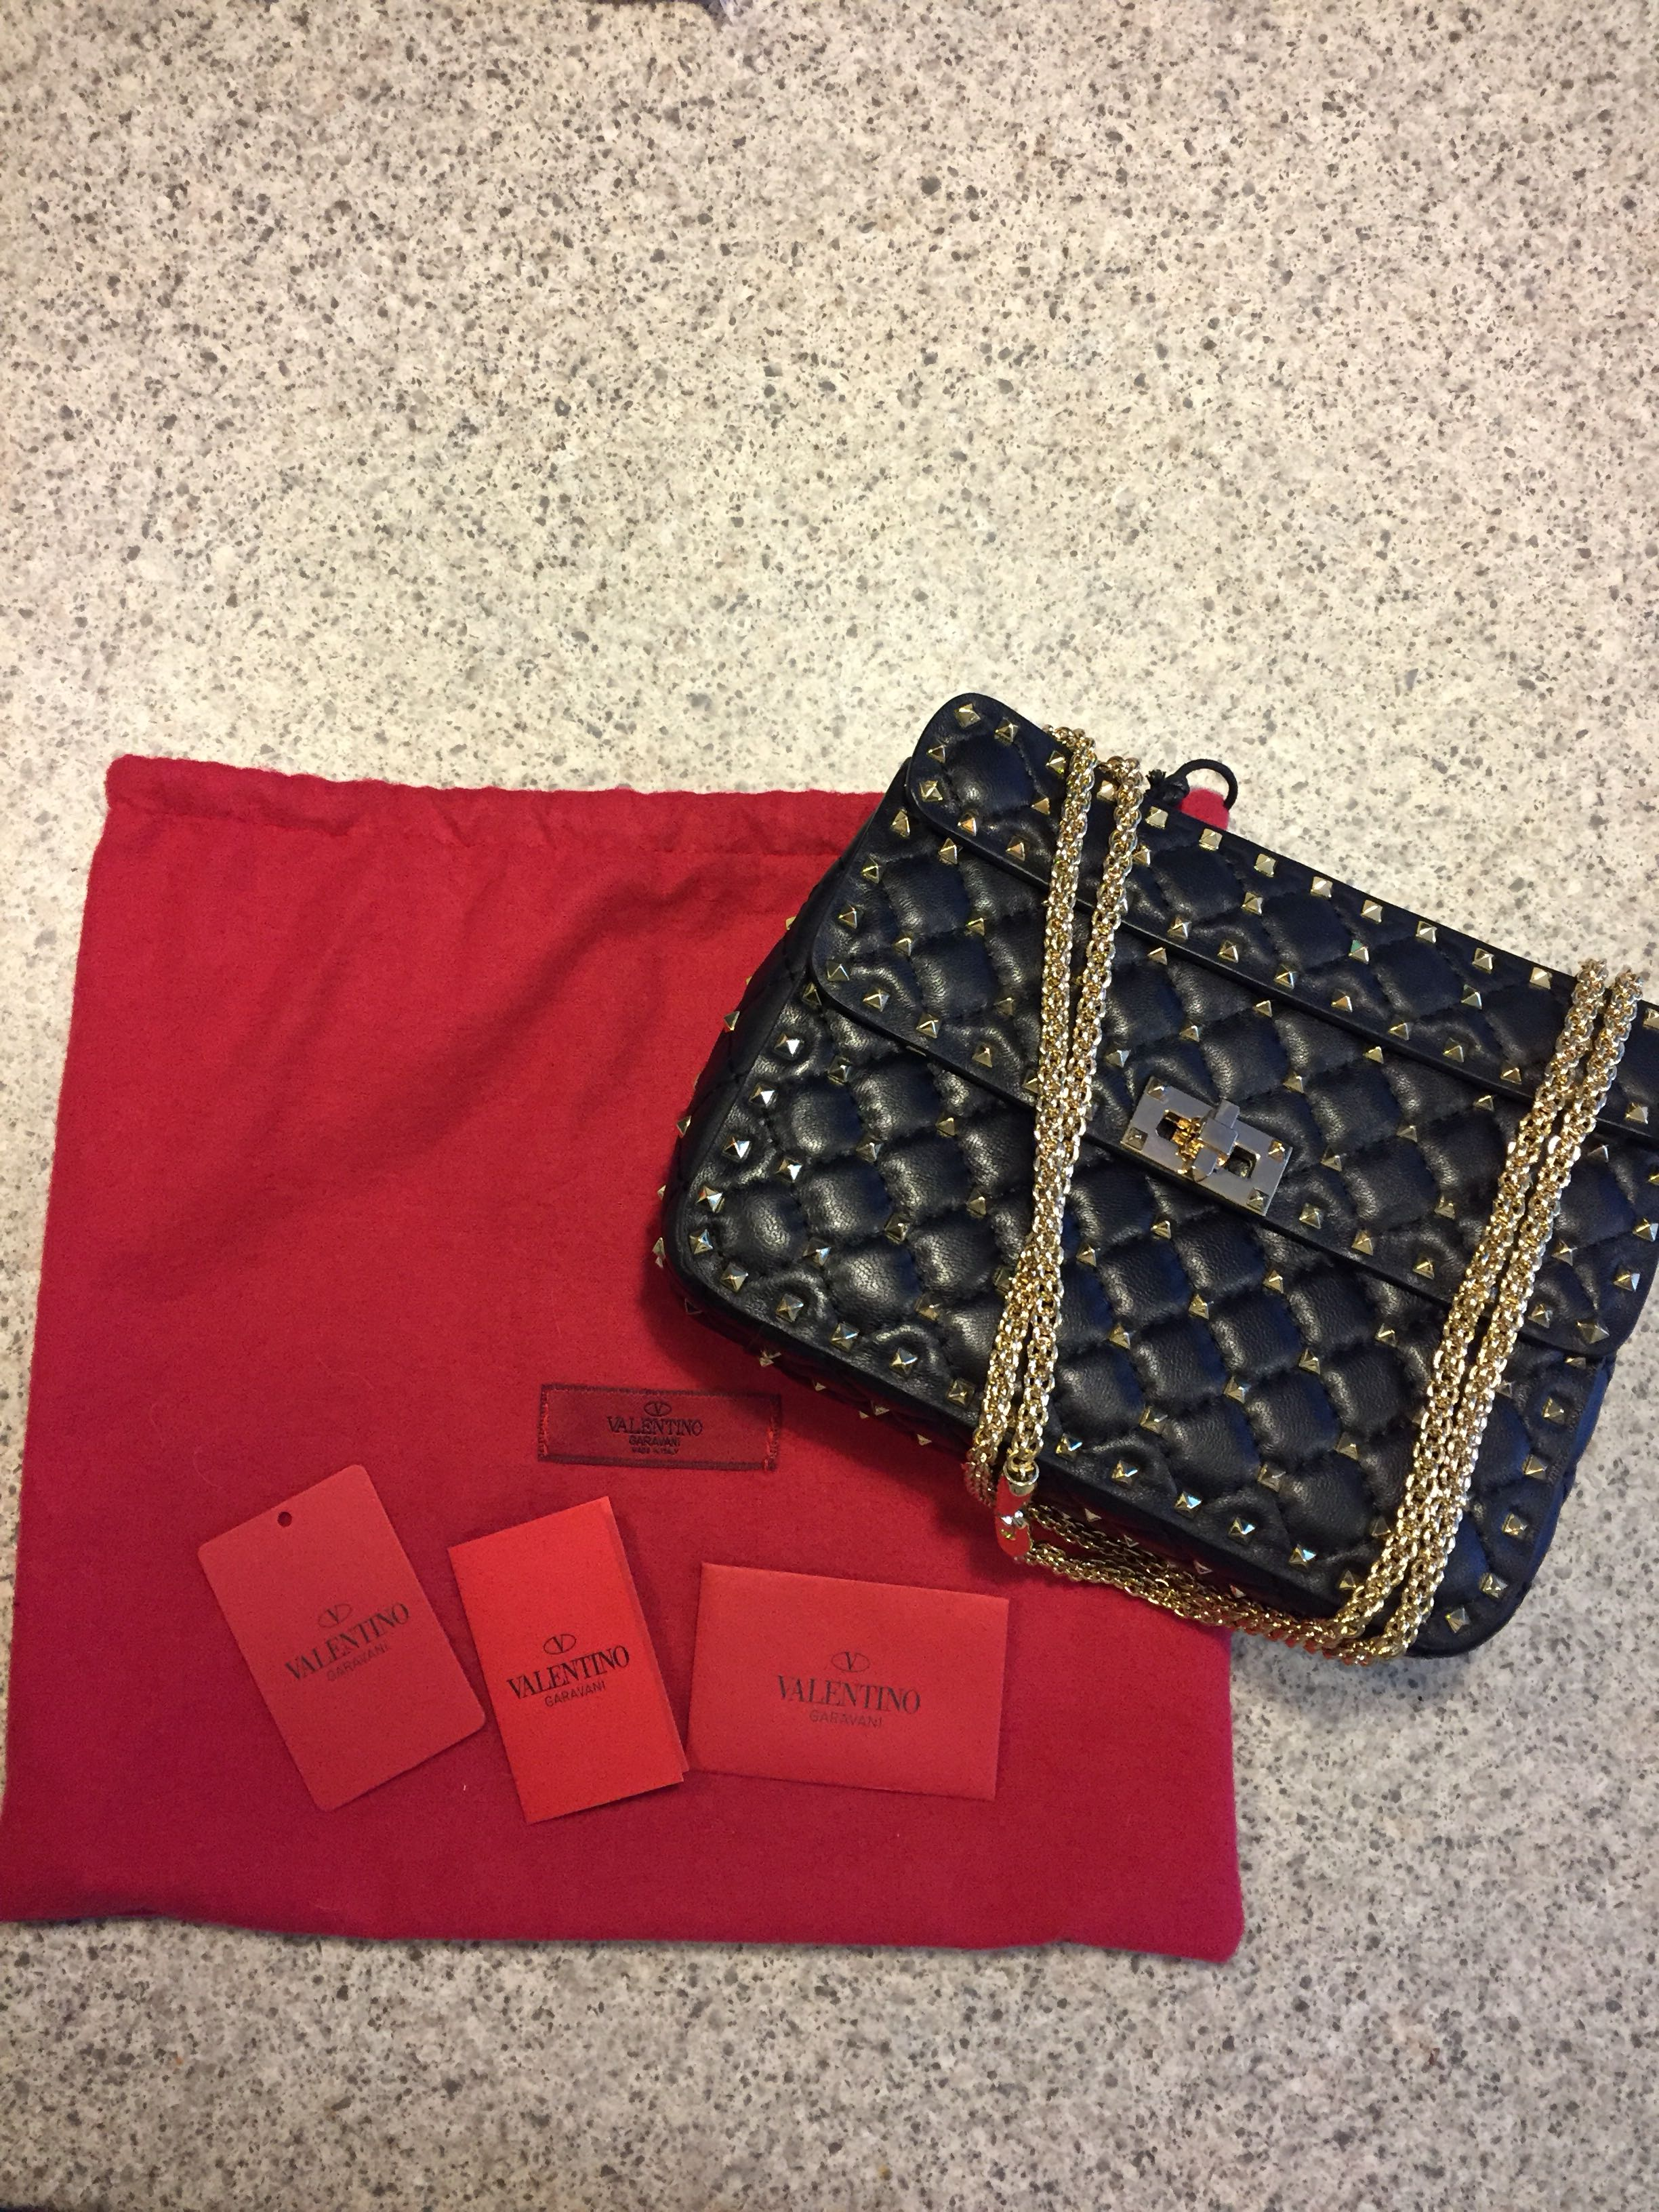 Valentino Rock stud Quilted leather chain bag crossbody